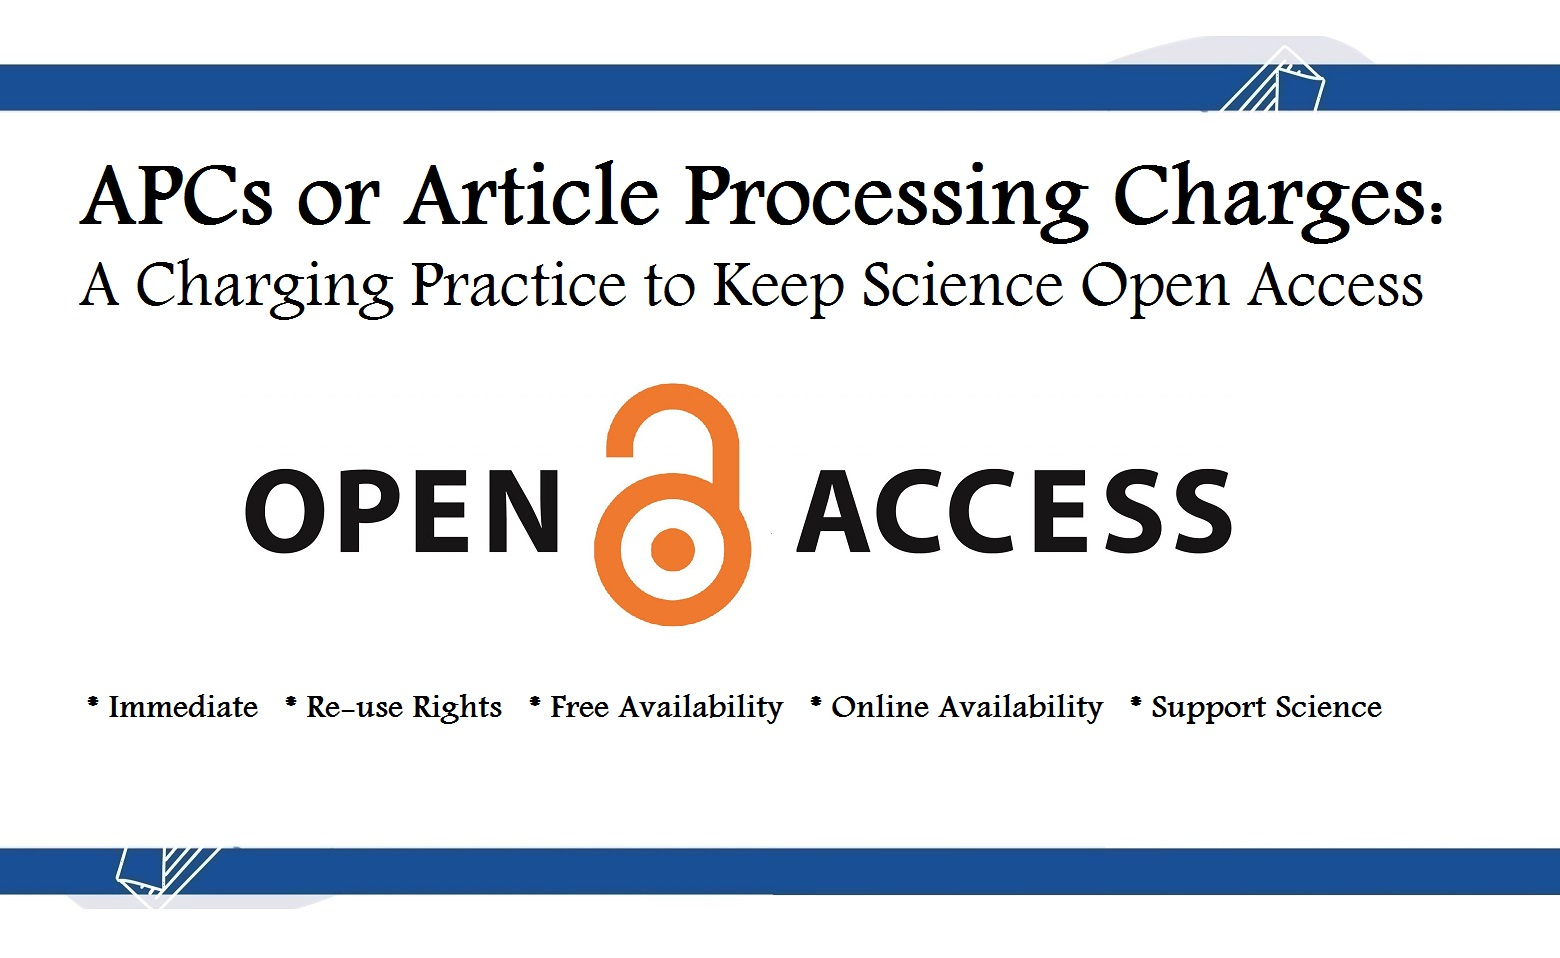 Article Processing Charges or APCs